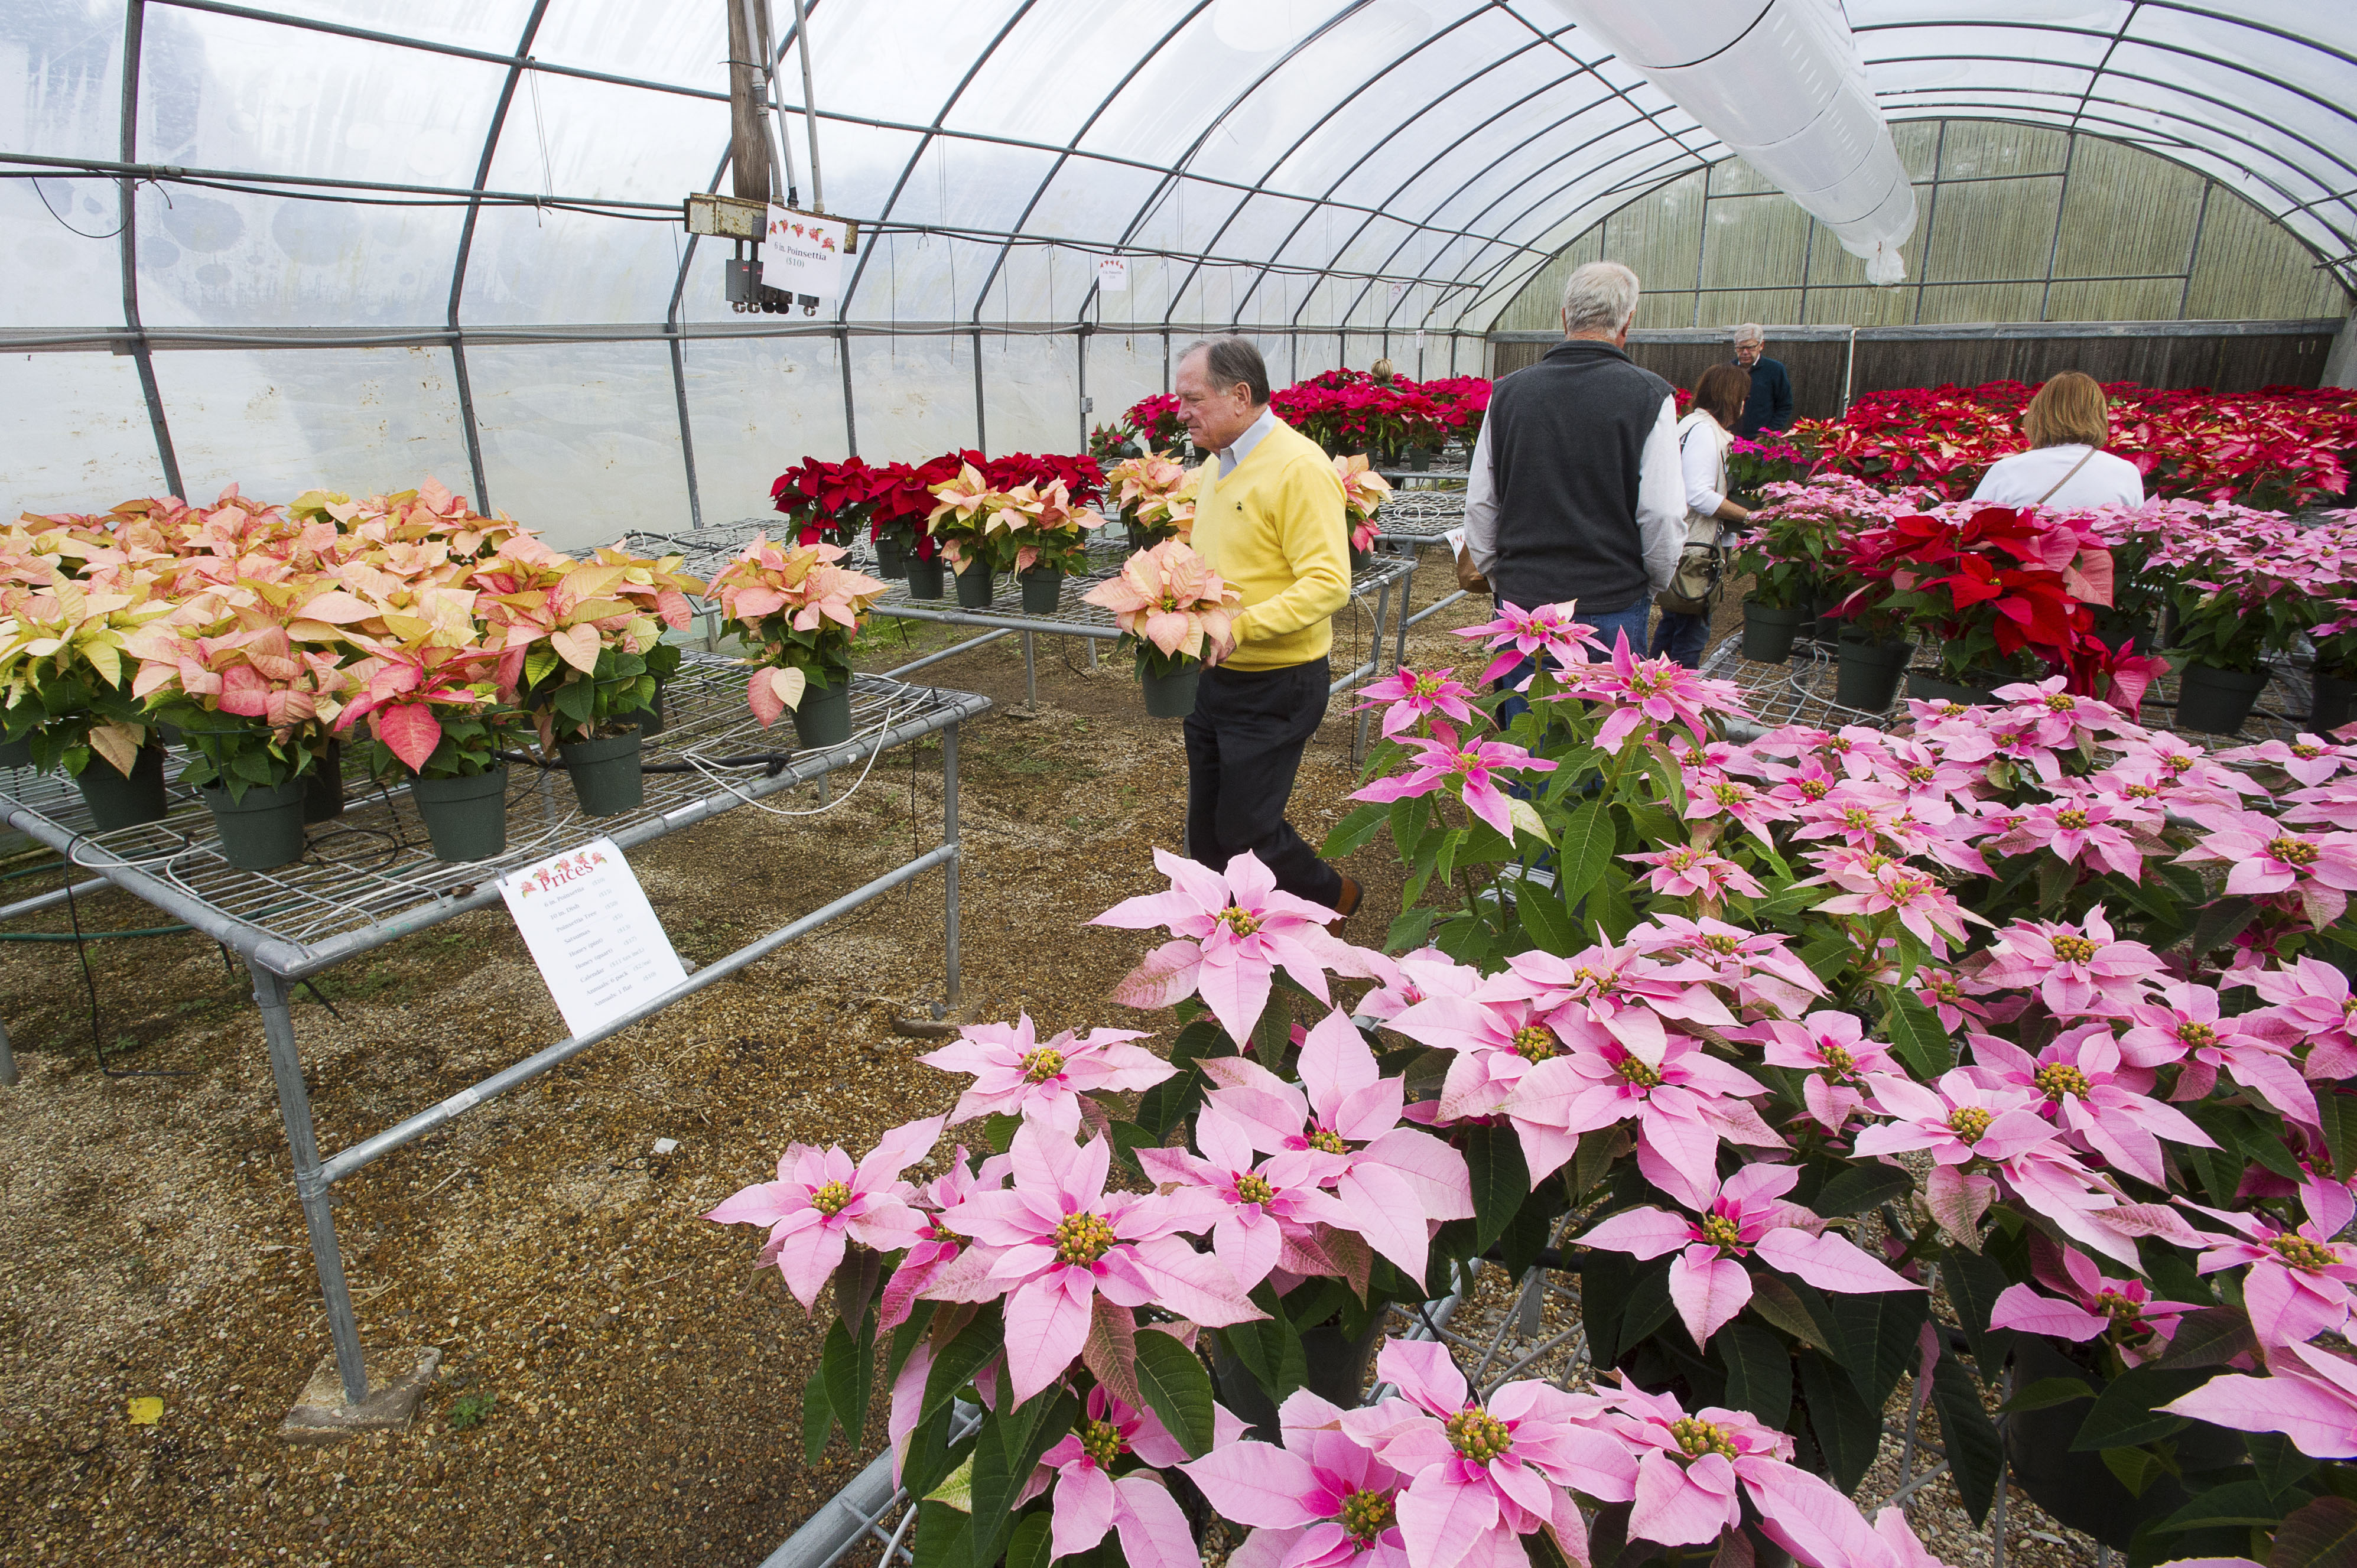 Visitors Purchase Poinsettias Evaluate New Varieties At Annual Event